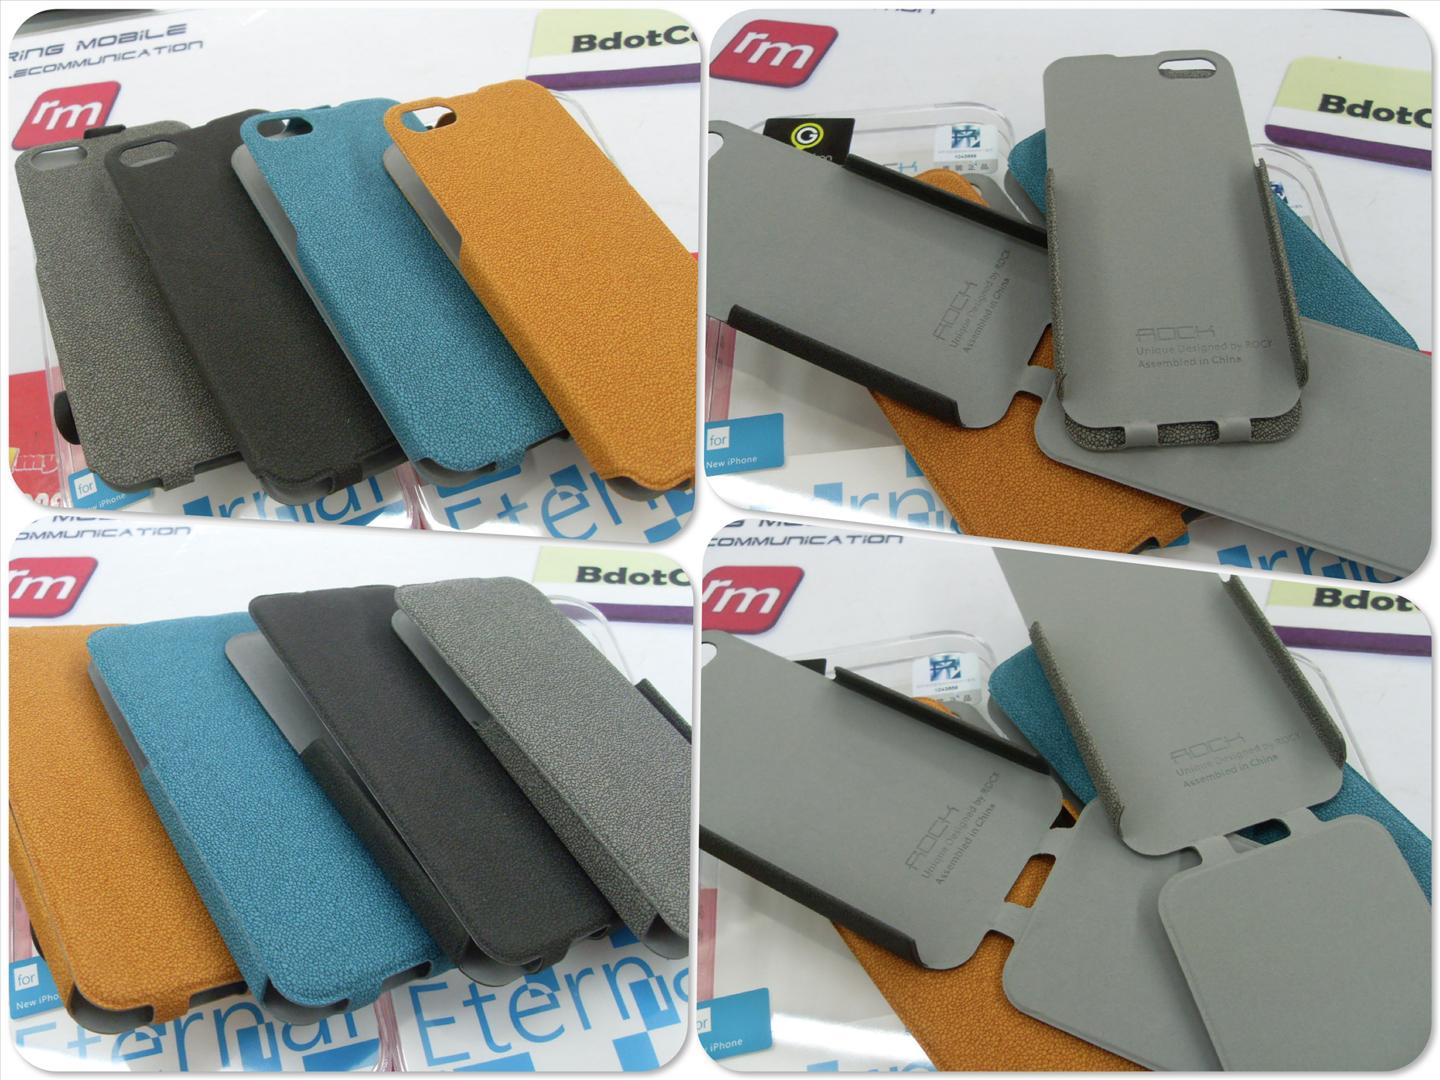 bdotcom = iphone 5 Rock flip leather case Eternal series =